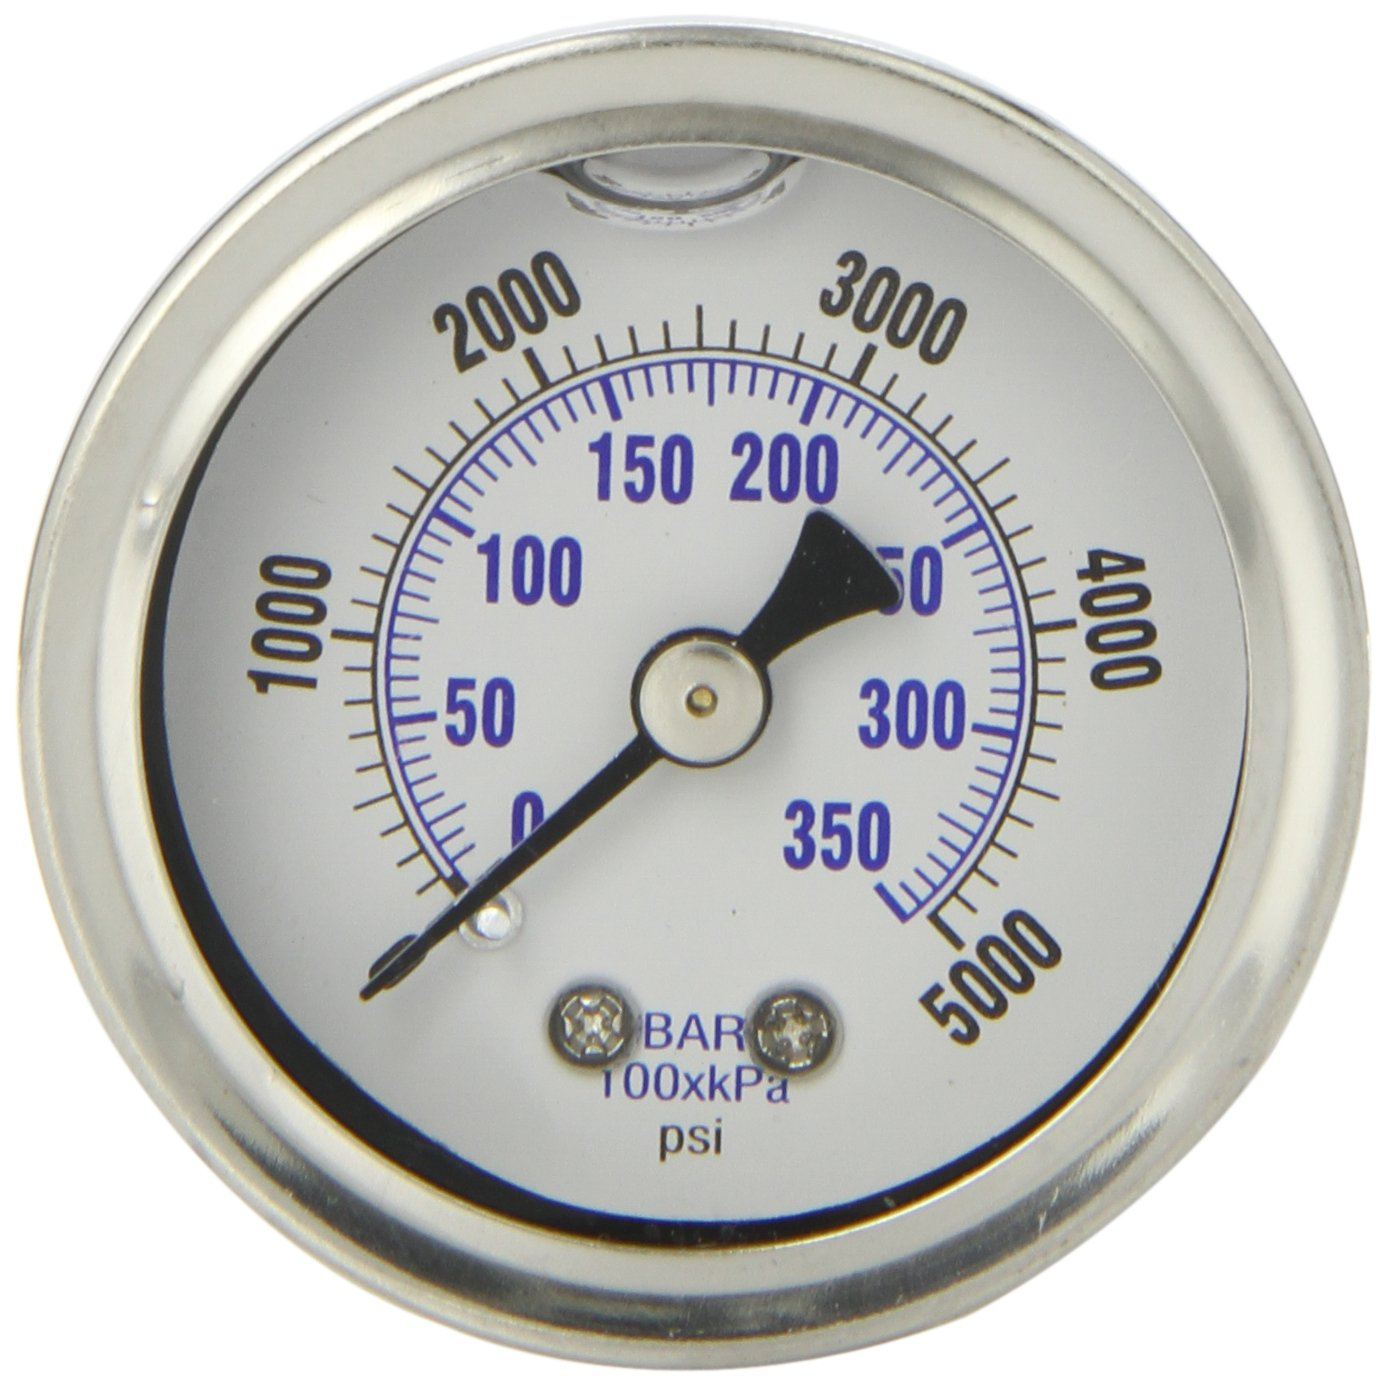 PIC Gauge 202L 158R 1.5 Dial 0 5000 psi Range 1 8 Male NPT Connection Size Center Back Mount Glycerine Filled Pressure Gauge with a Stainless Steel Case Brass Internals Stainless Steel Bezel and Polycarbonate Lens